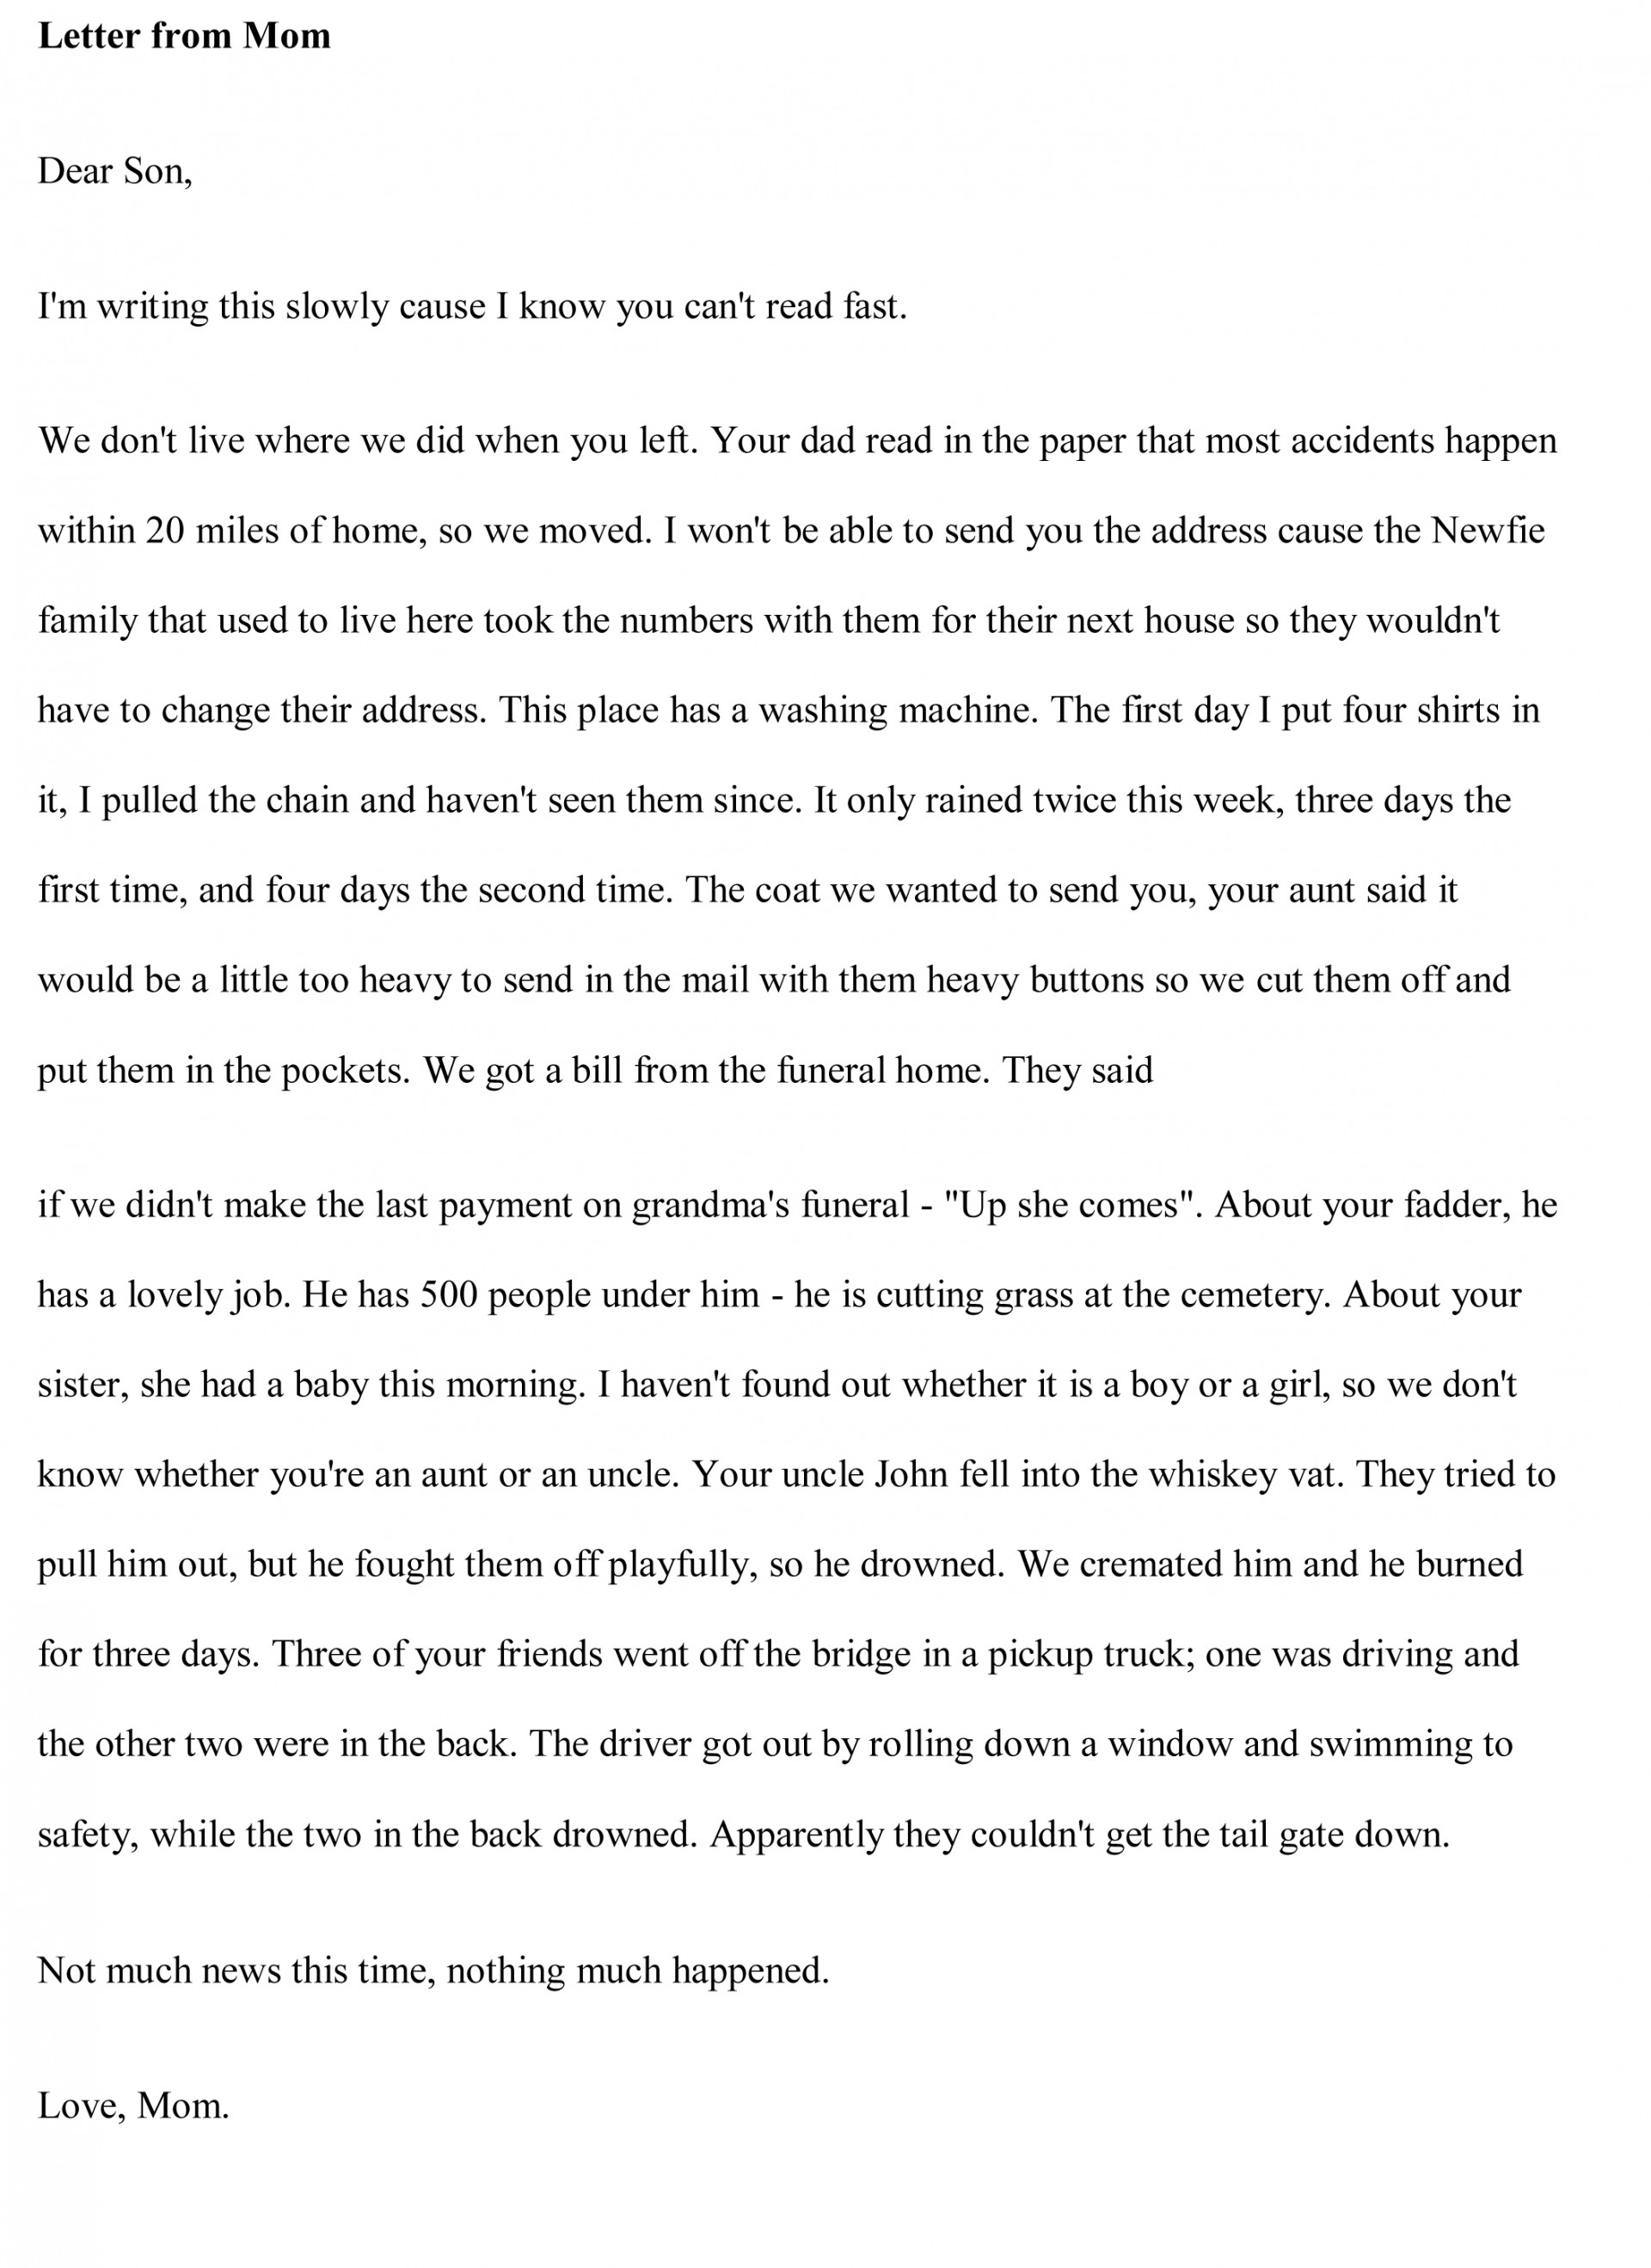 001 Humorous Essays Funny Essay Free Sample Outstanding In English For High School On Marriage 1920